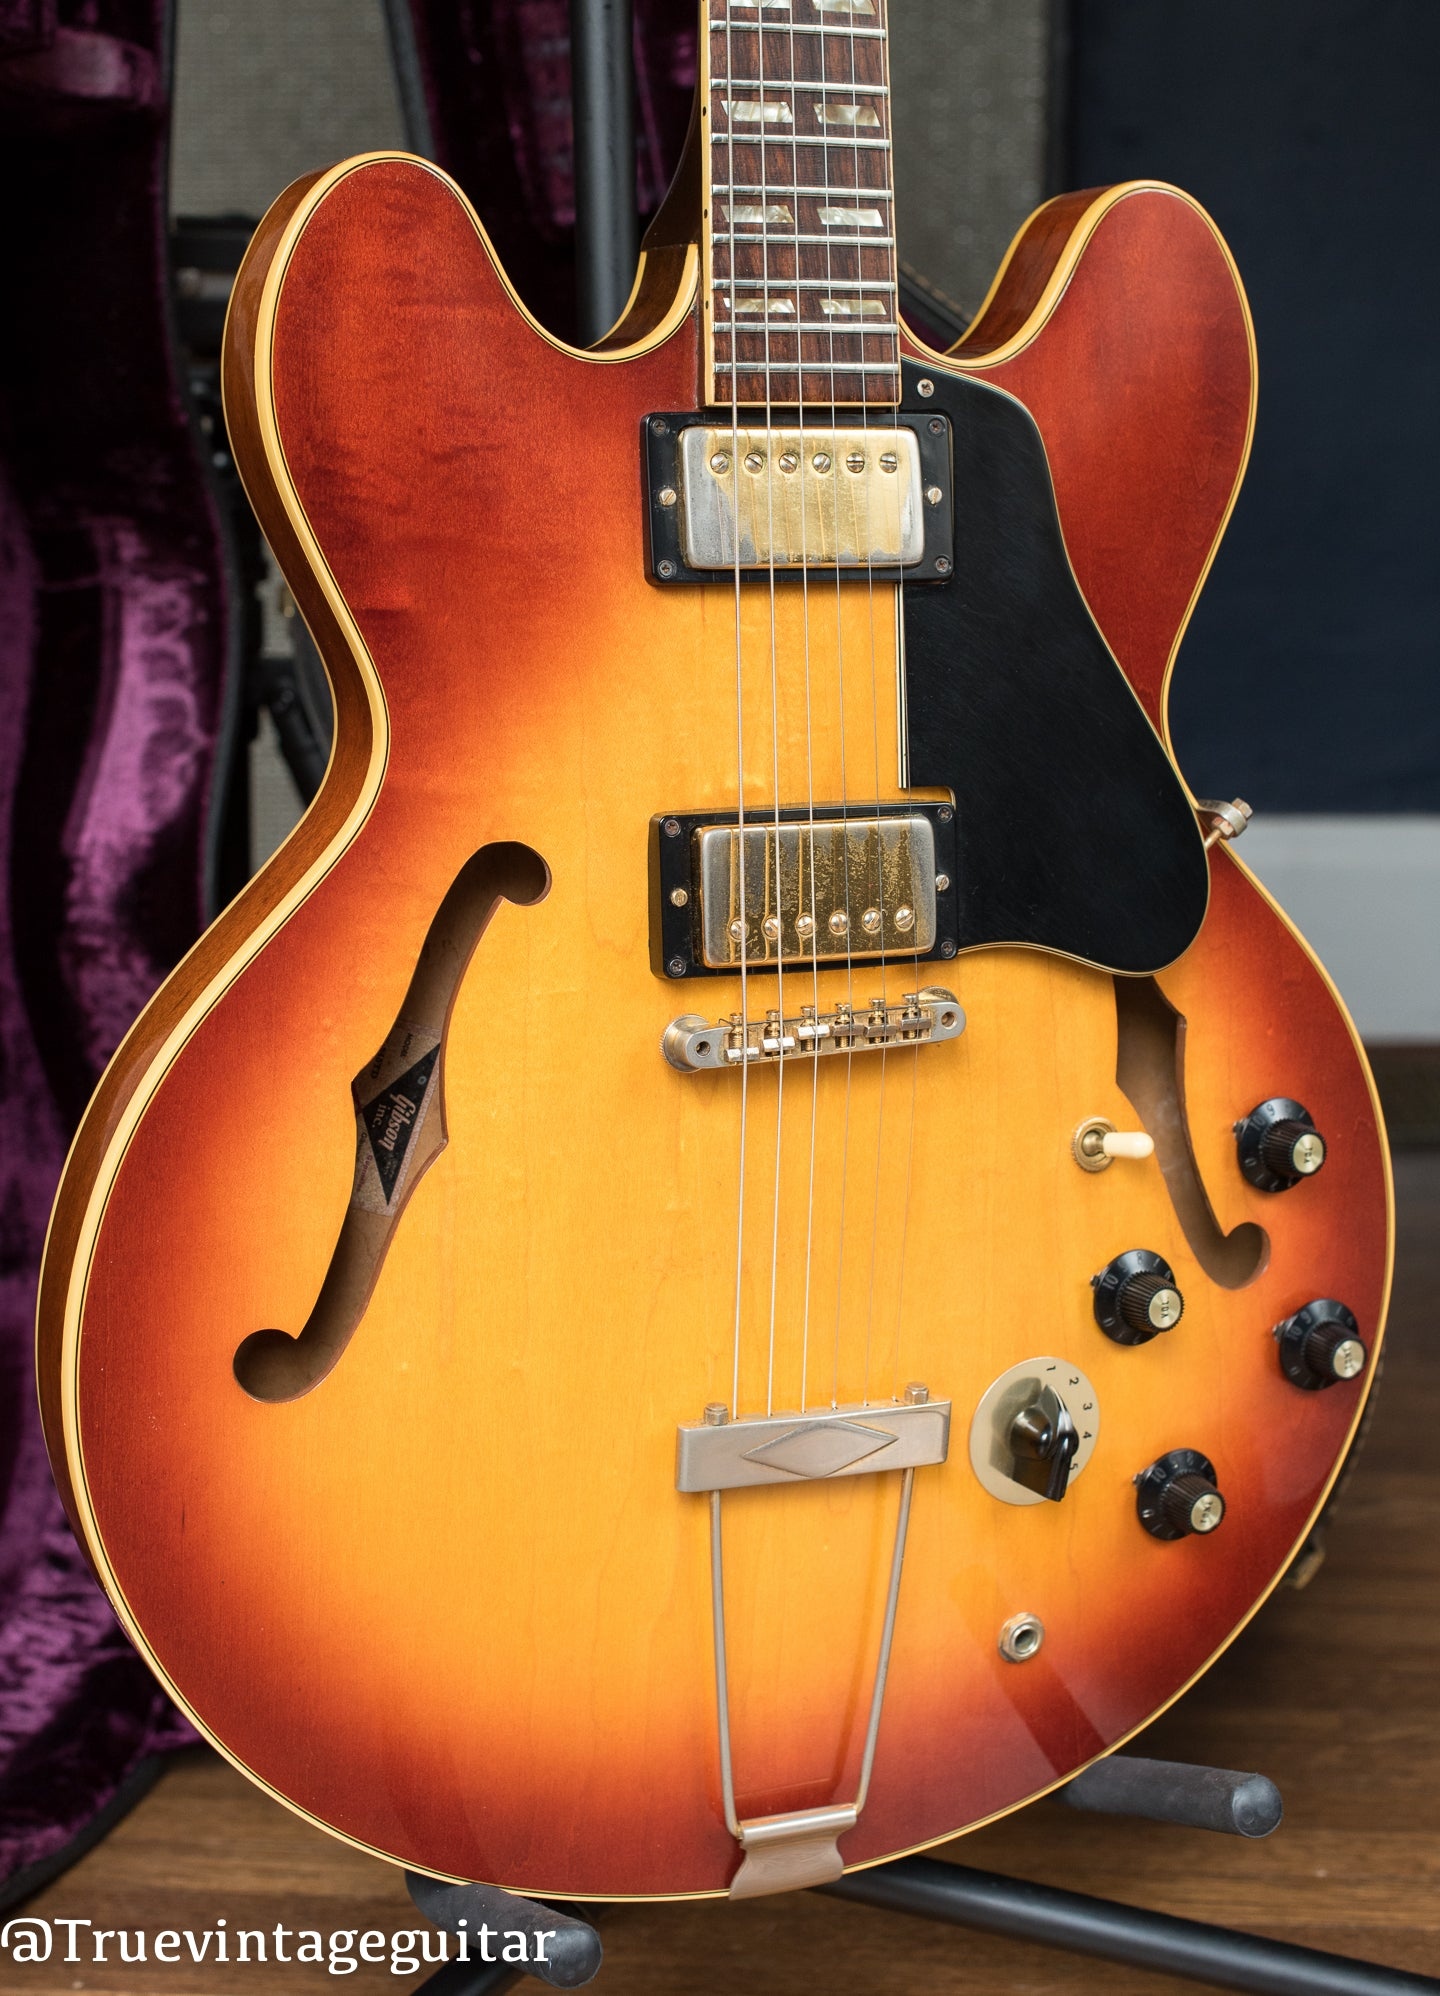 1972 Gibson ES-345 Cherry Sunburst